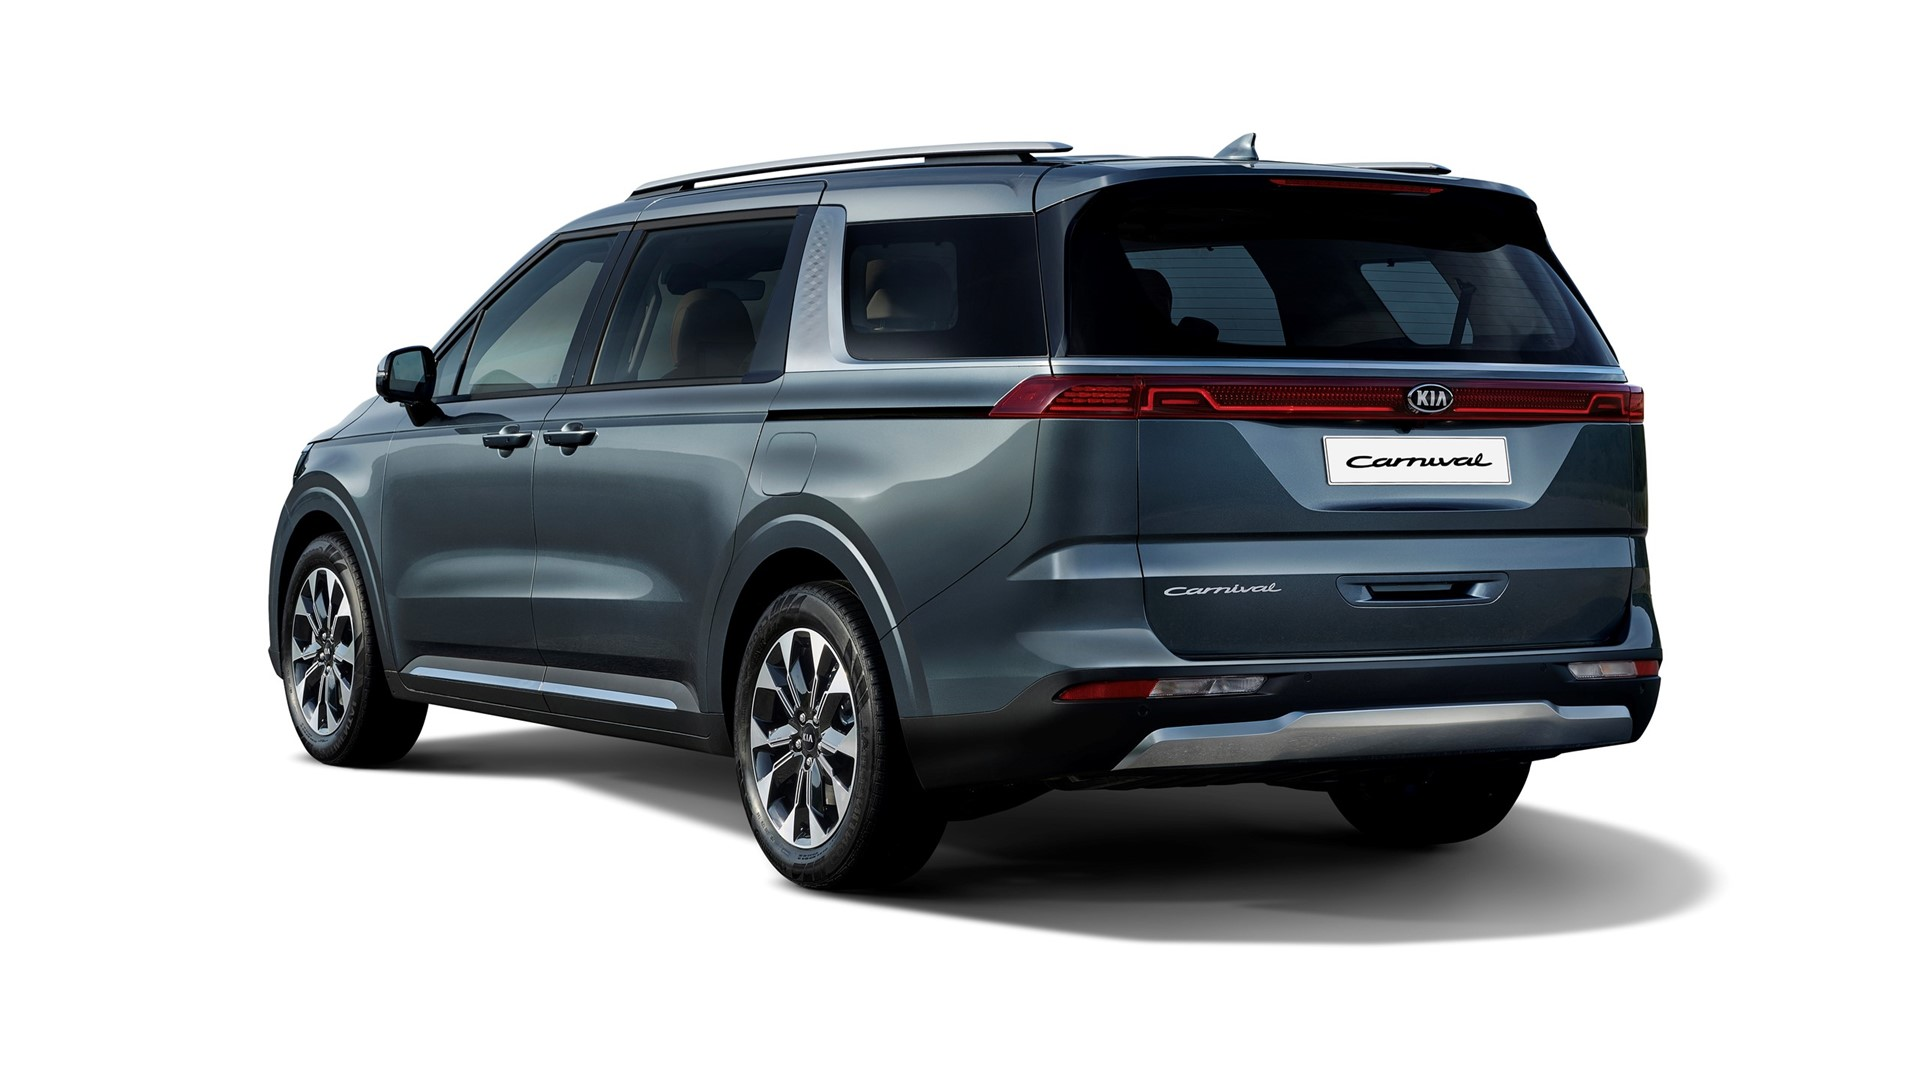 Kia introduces all-new Carnival, offering unrivalled style, space and comfort - Image 4